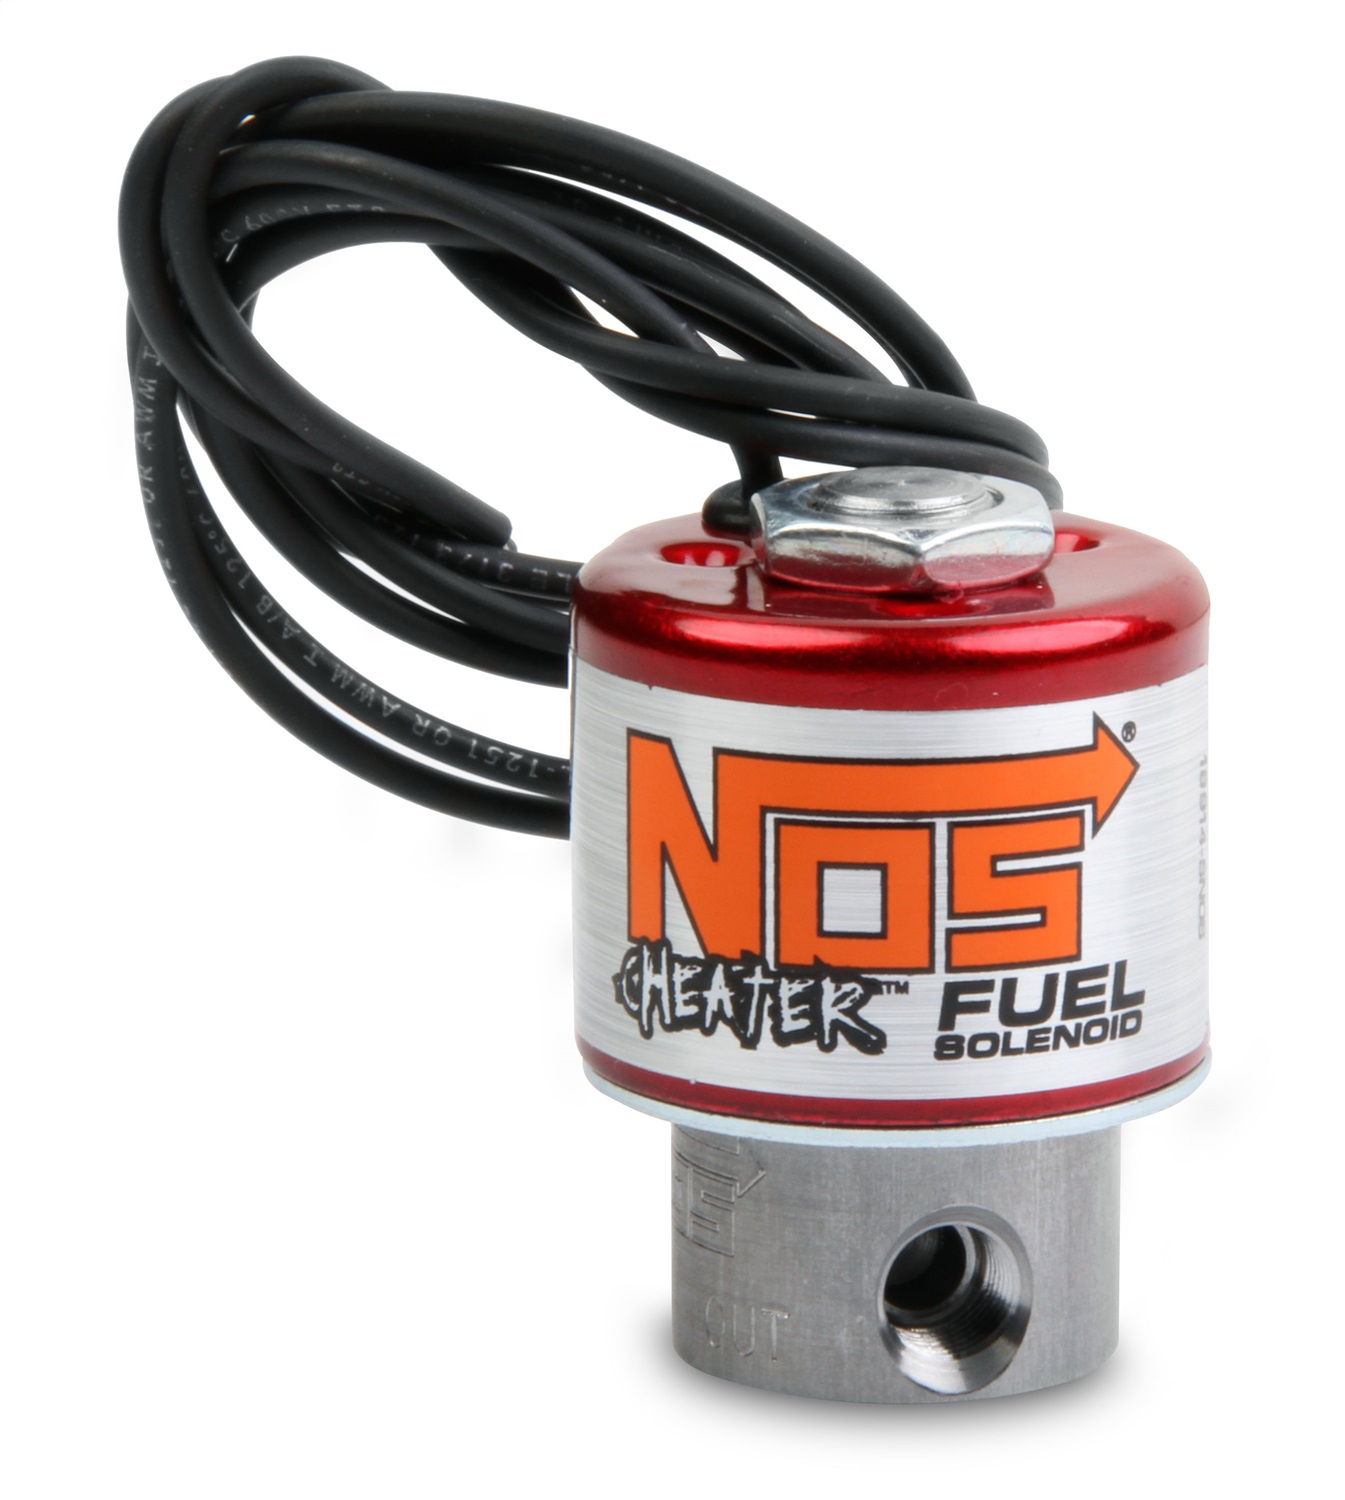 Fuel Solenoid Nos Cheater Replacement Auto Part, Easy to Install